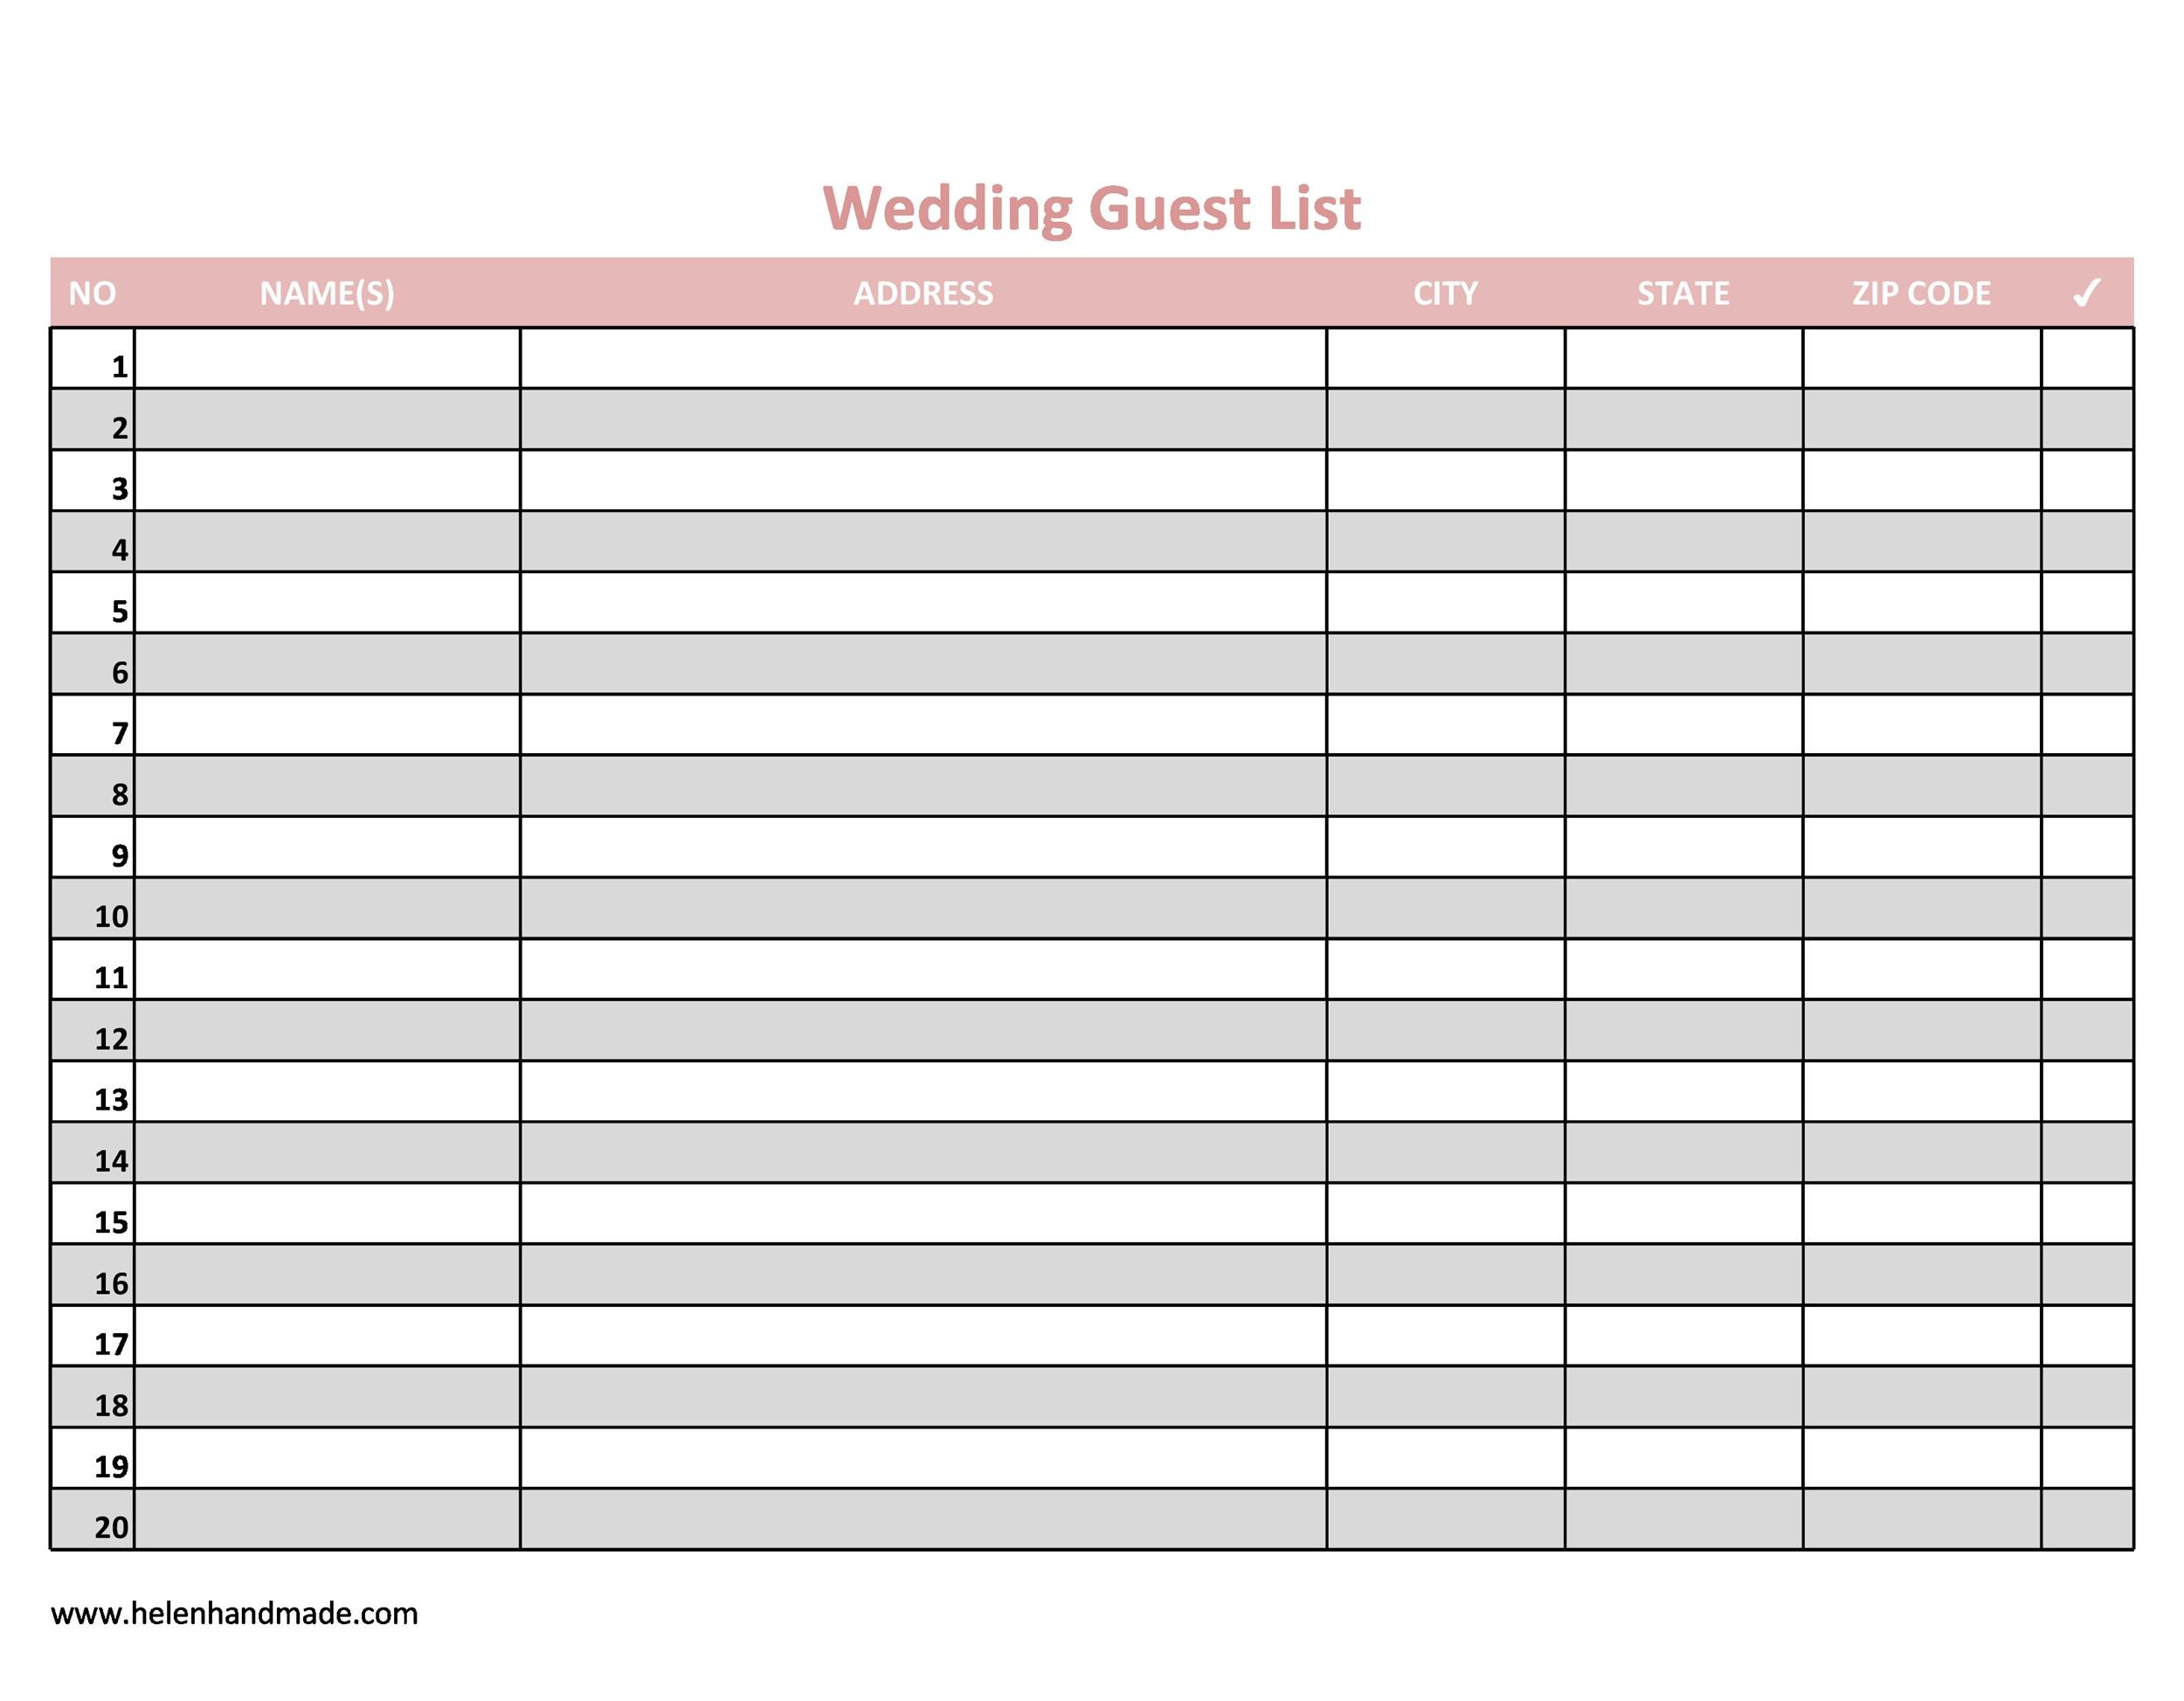 Transformative image in wedding guest list printable